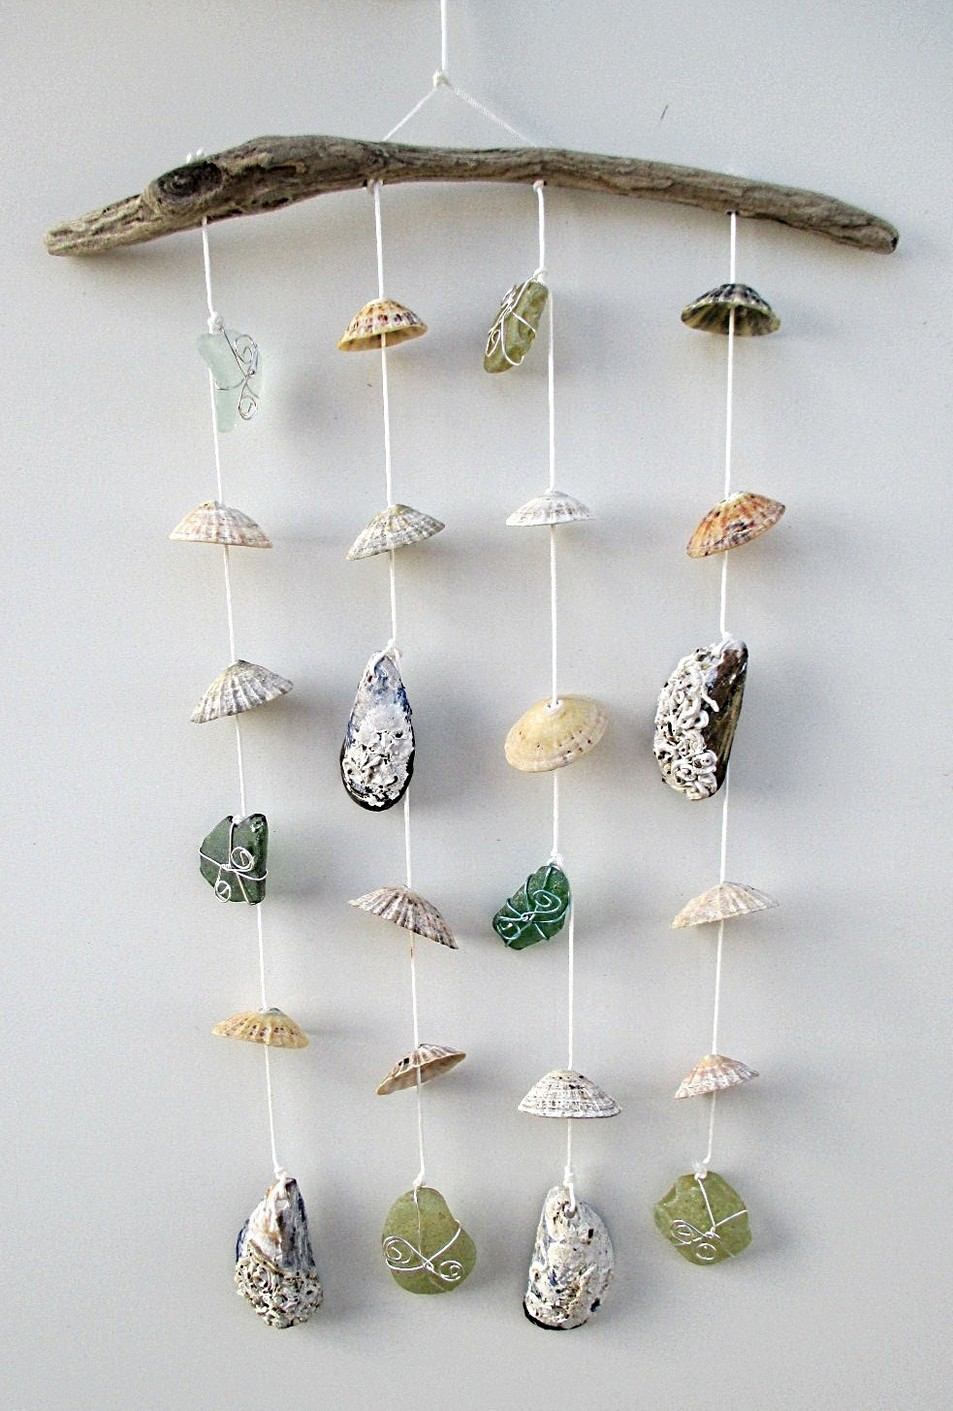 http://www.iconhomedesign.com/diy-wind-chimes-ideas-to-create-beautiful-decoration.html/diy-seashell-wind-chimes